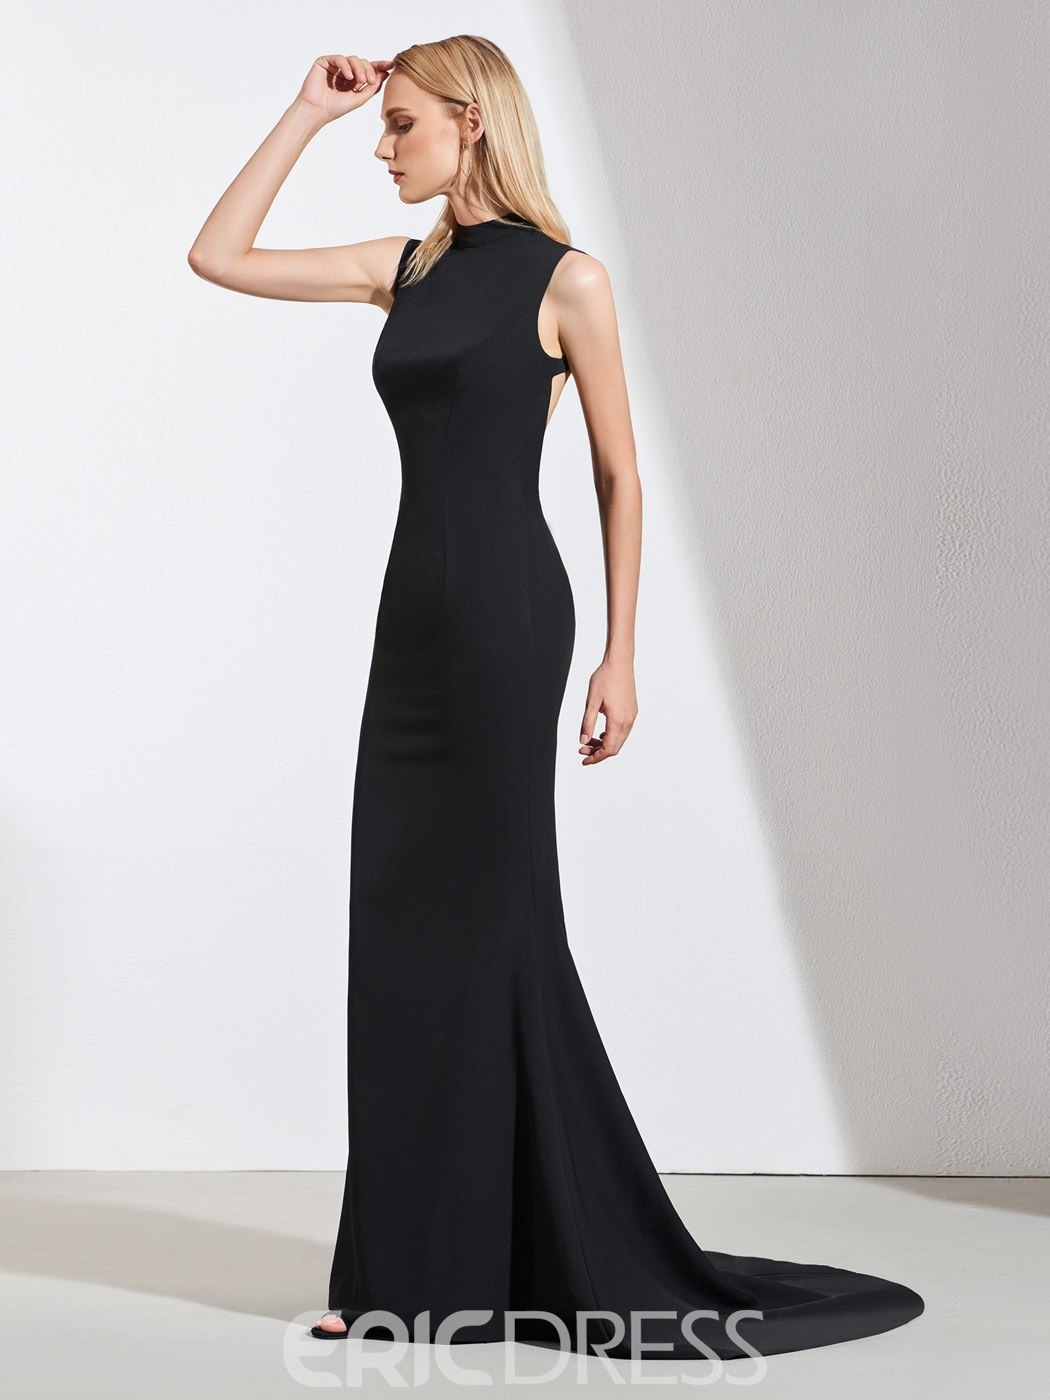 Ericdress Mock Neck Backless Mermaid Black Evening Dress